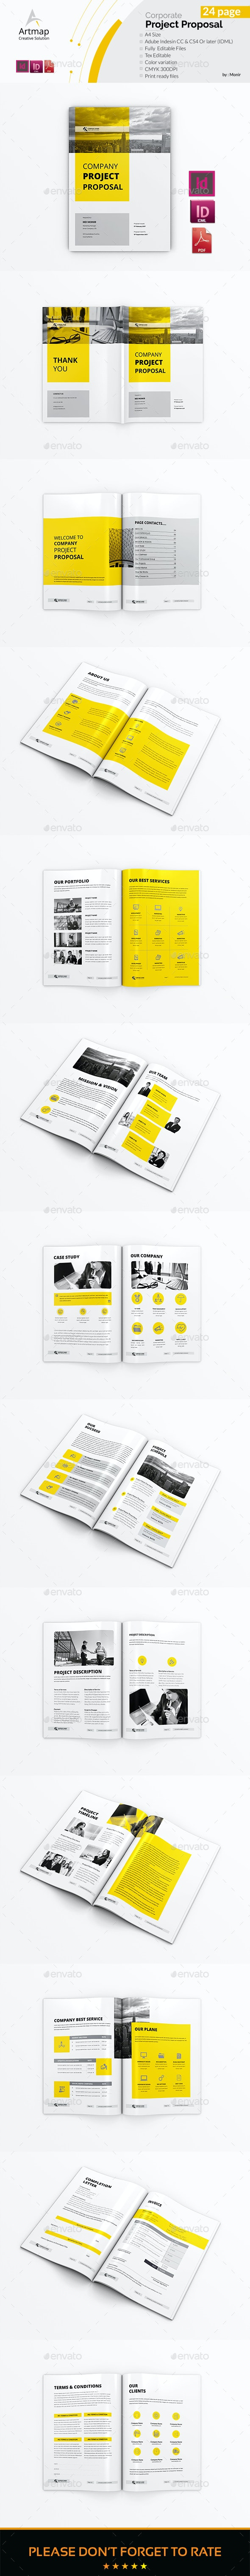 Proposal - Stationery Print Templates